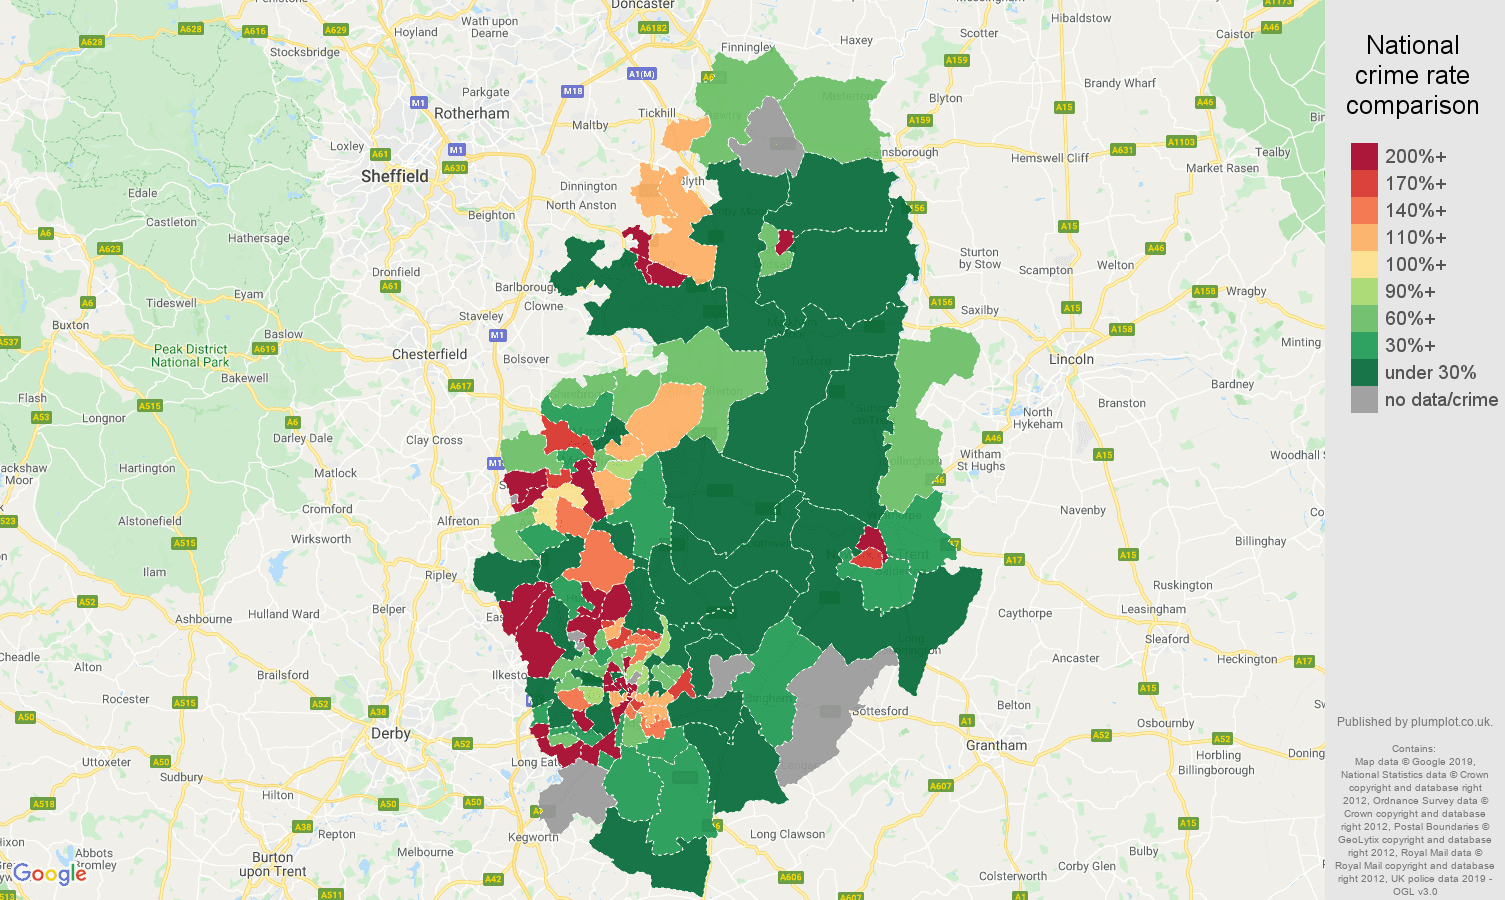 Nottinghamshire shoplifting crime rate comparison map